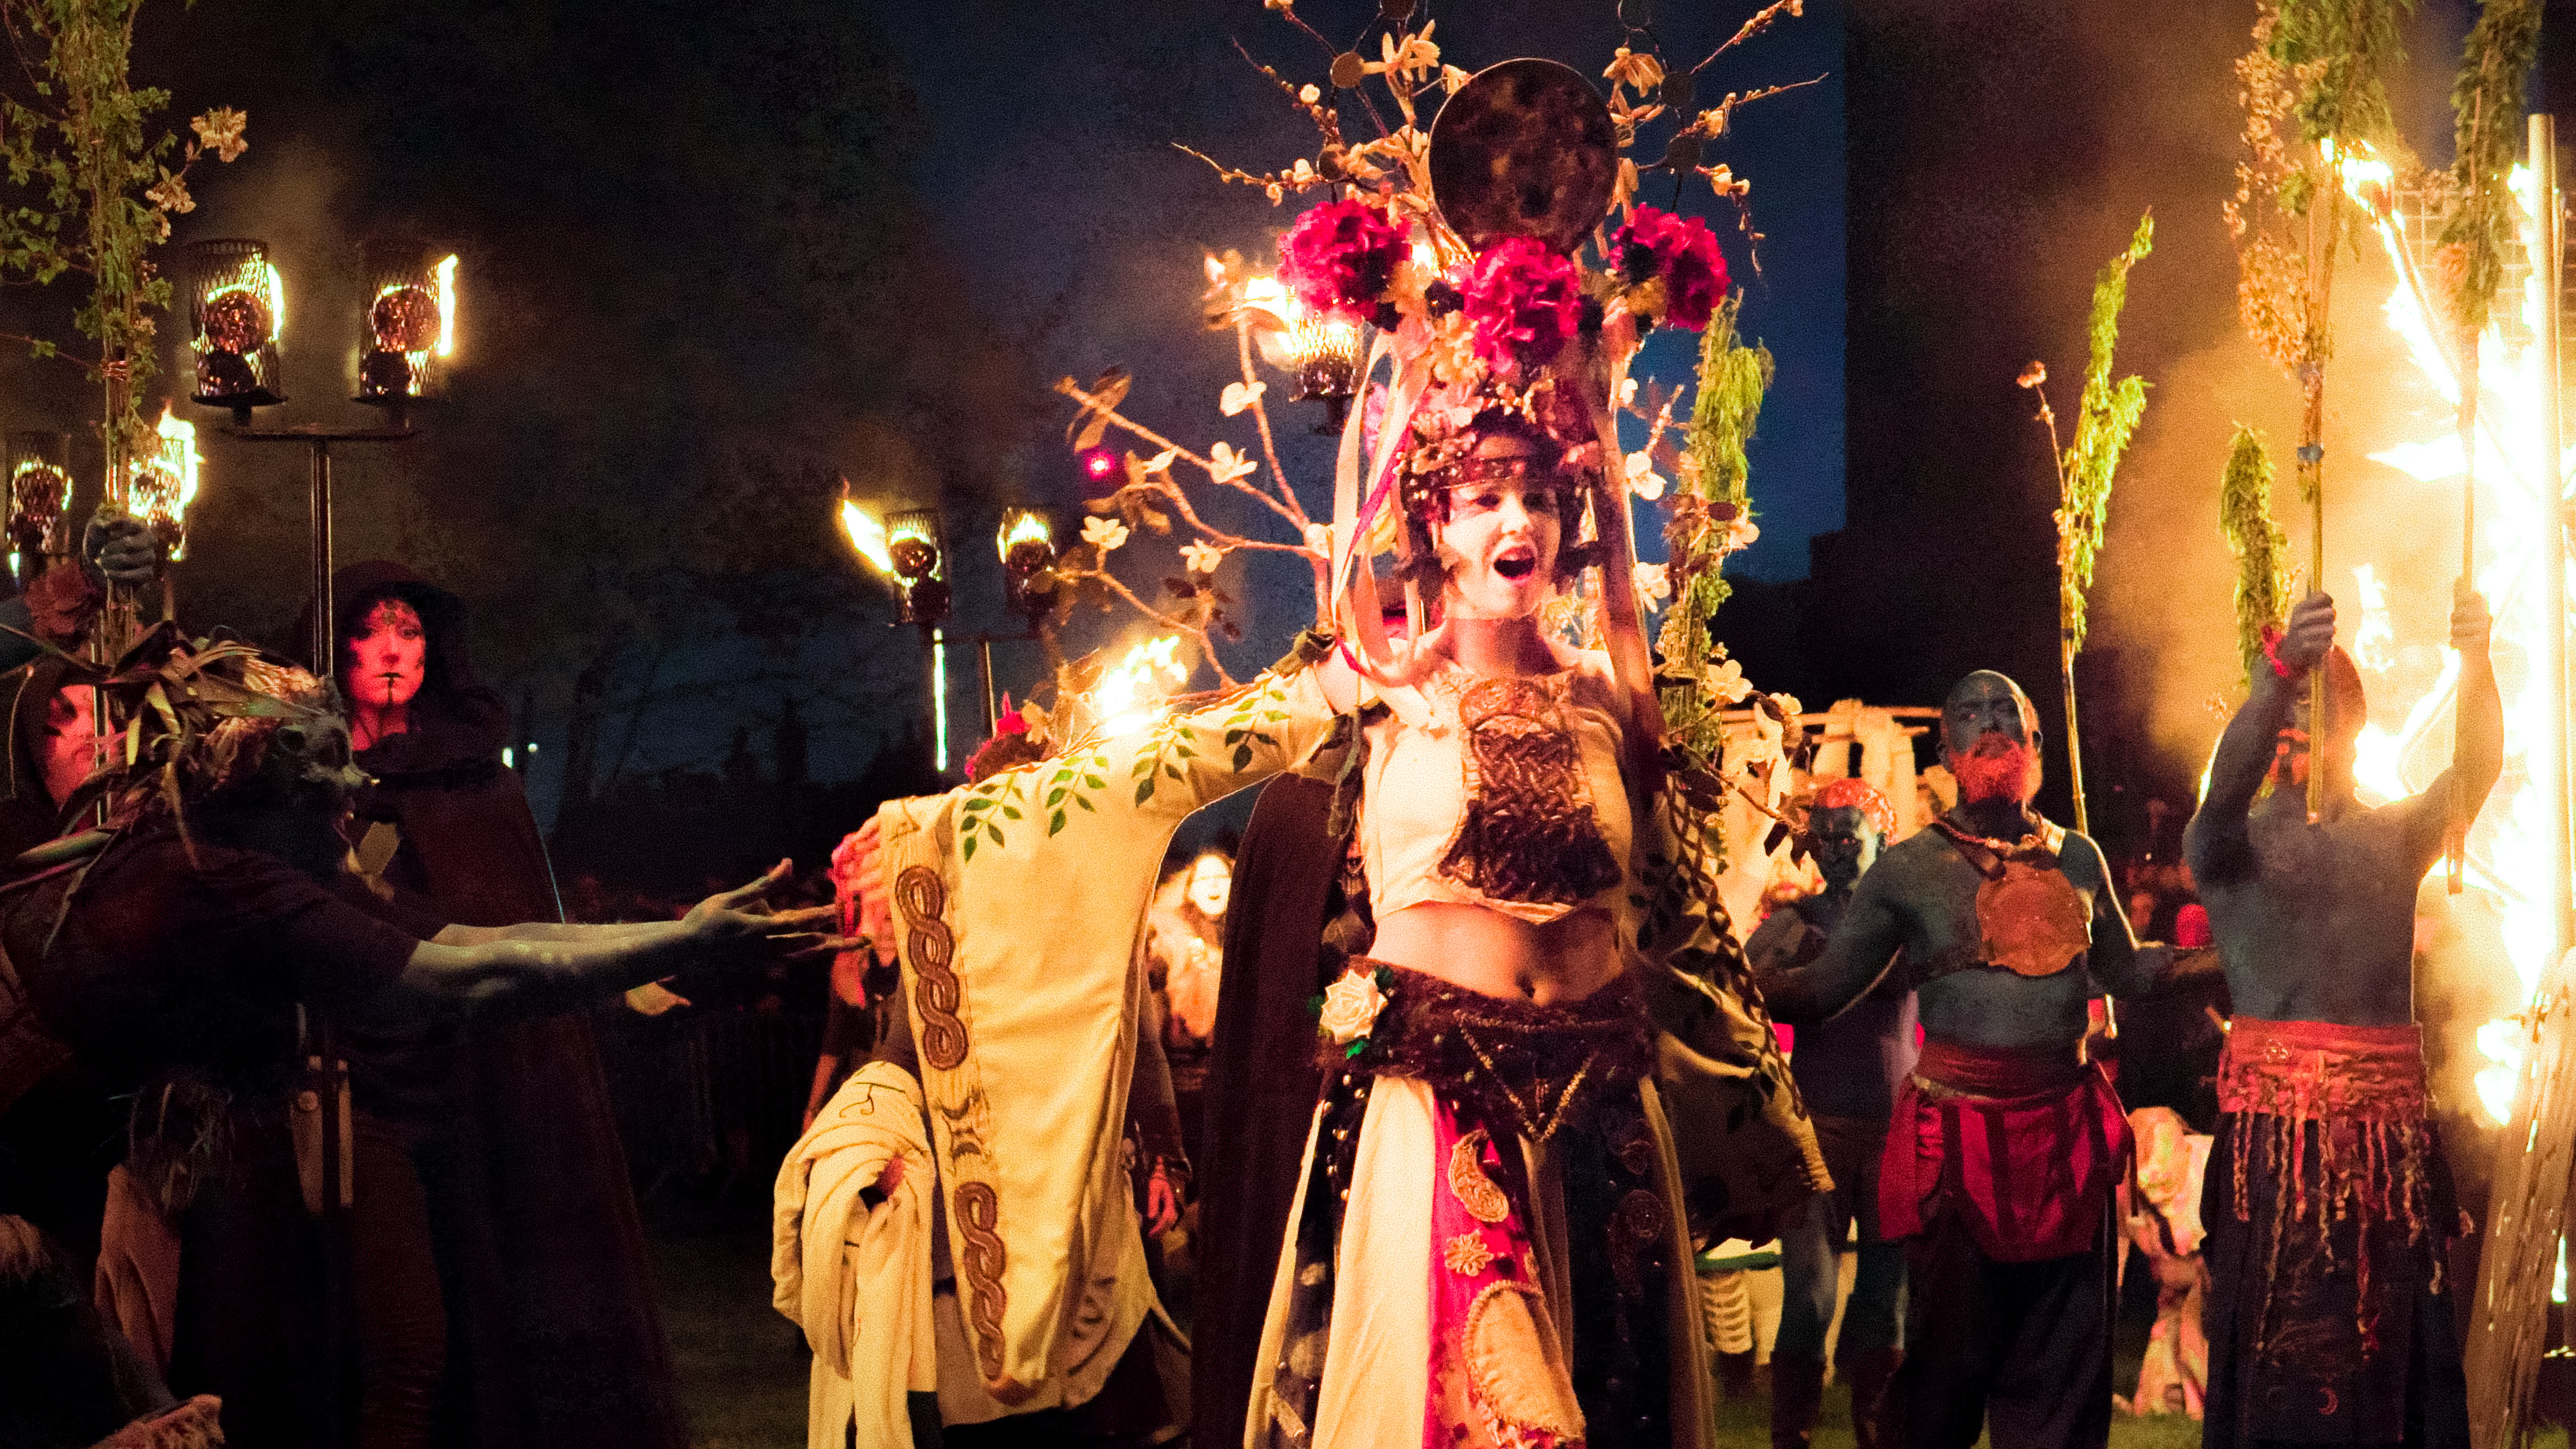 The May Queen leading the procession. Copyright Duncan Reddish for Beltane Fire Society. All Rights Reserved. www.beltane.org / www.facebook.com/beltanefiresociety